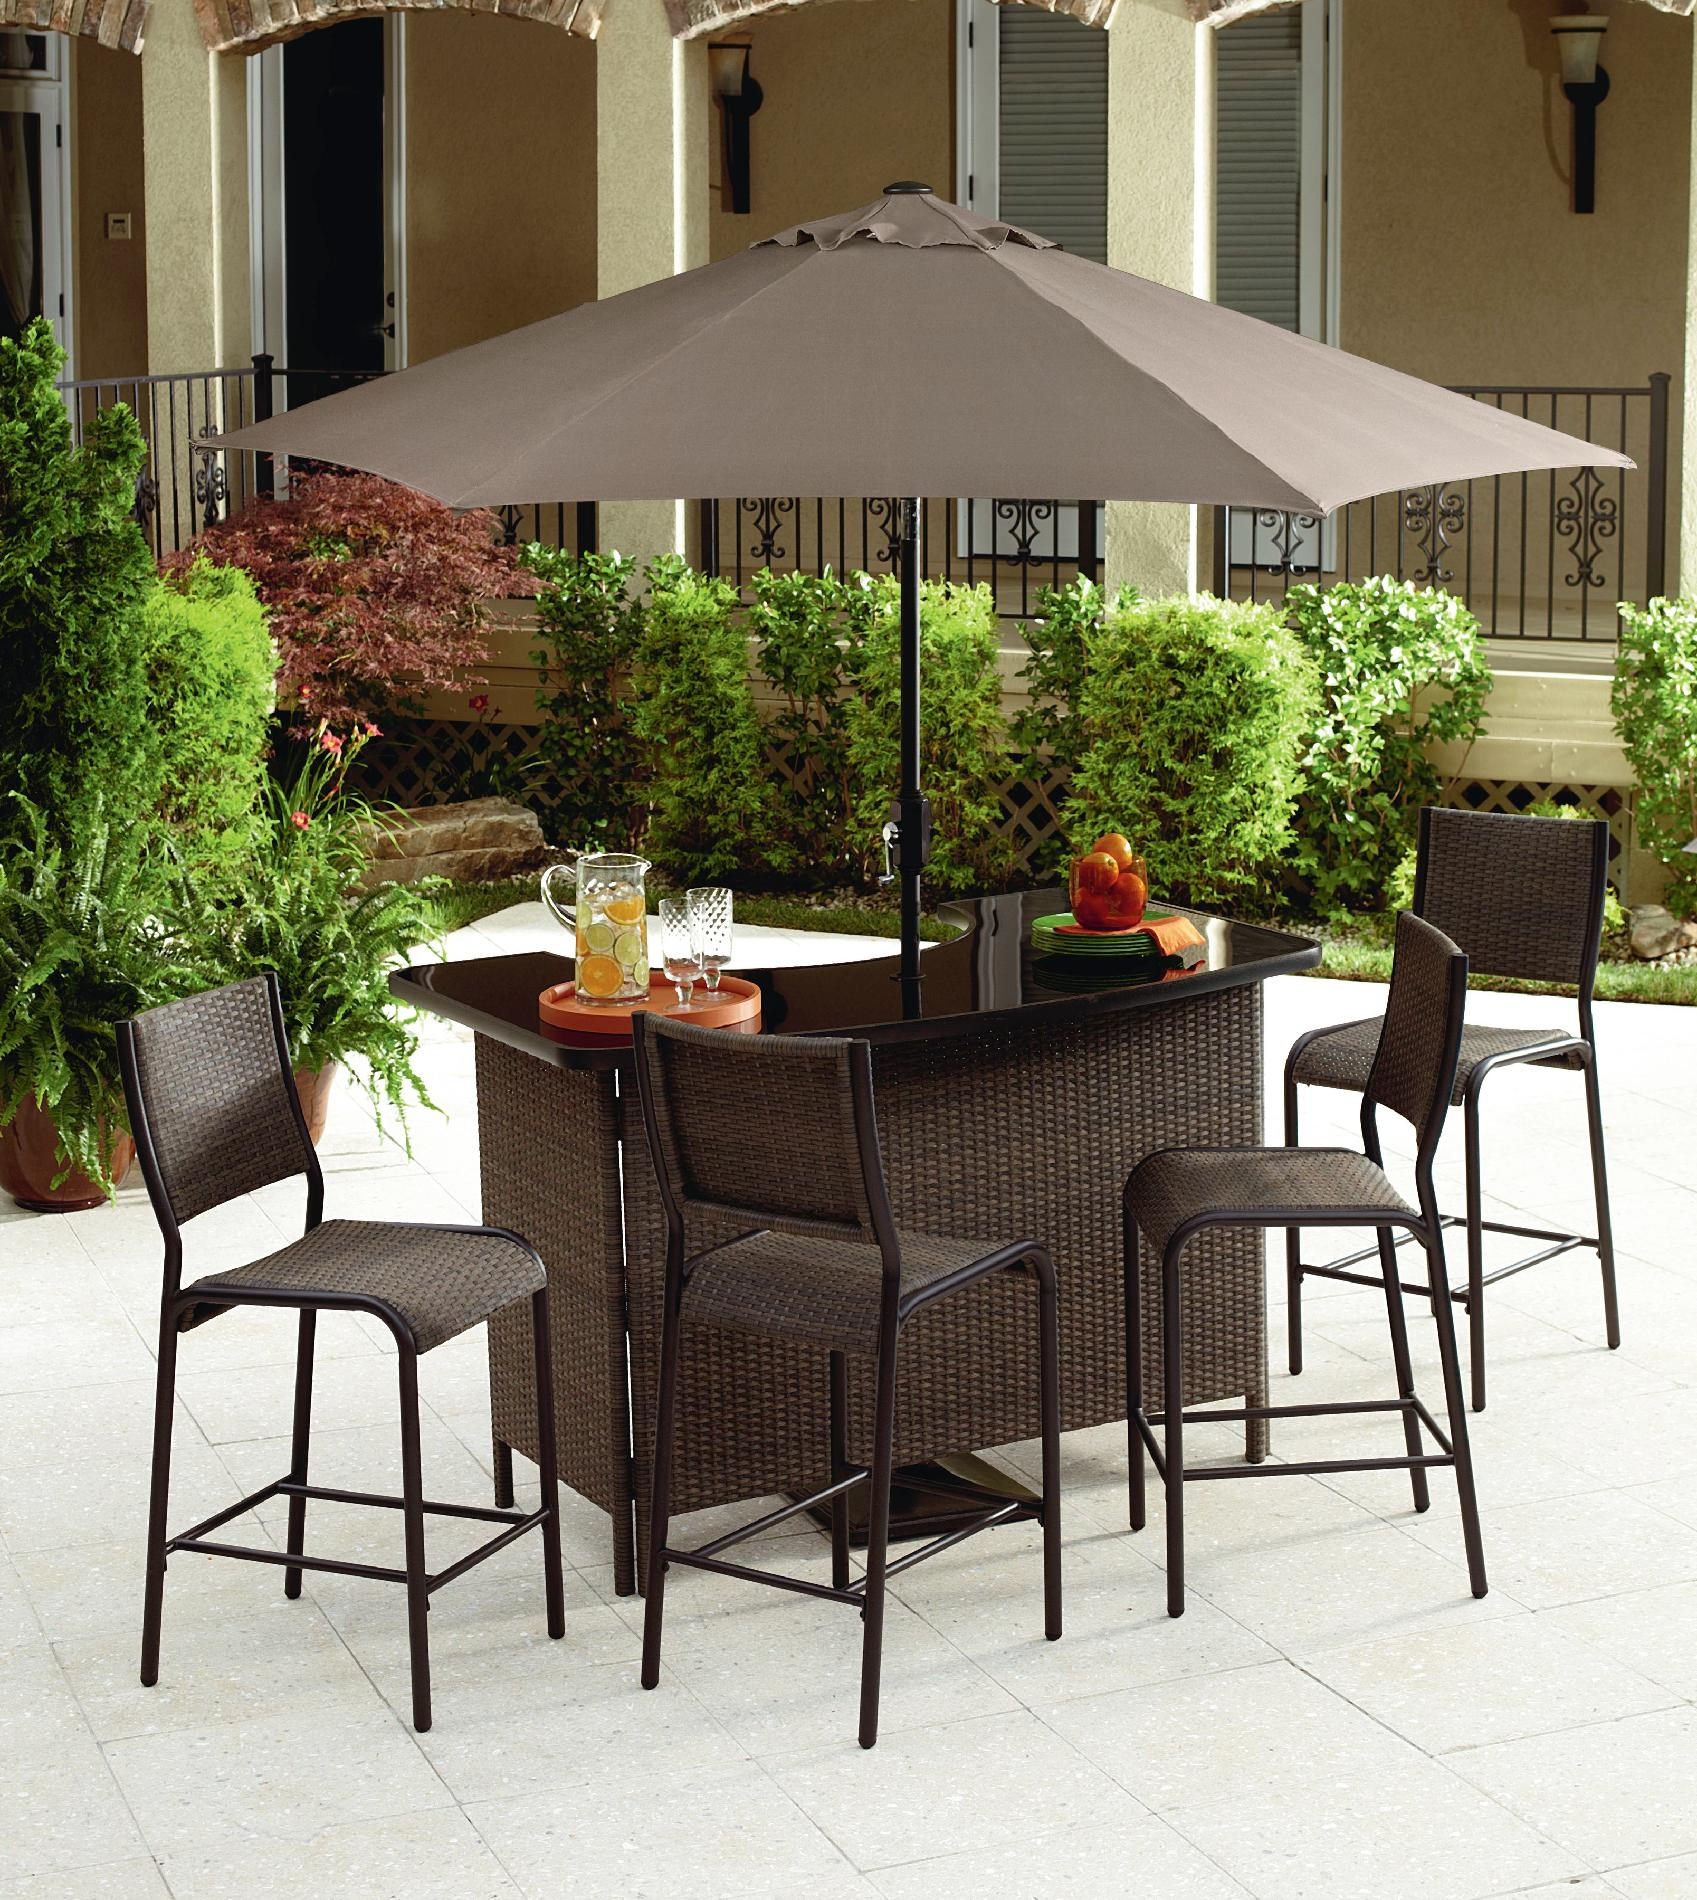 Grand Resort Wilton 5 Piece Bar Set Limited Availability - Outdoor Living Patio Furniture